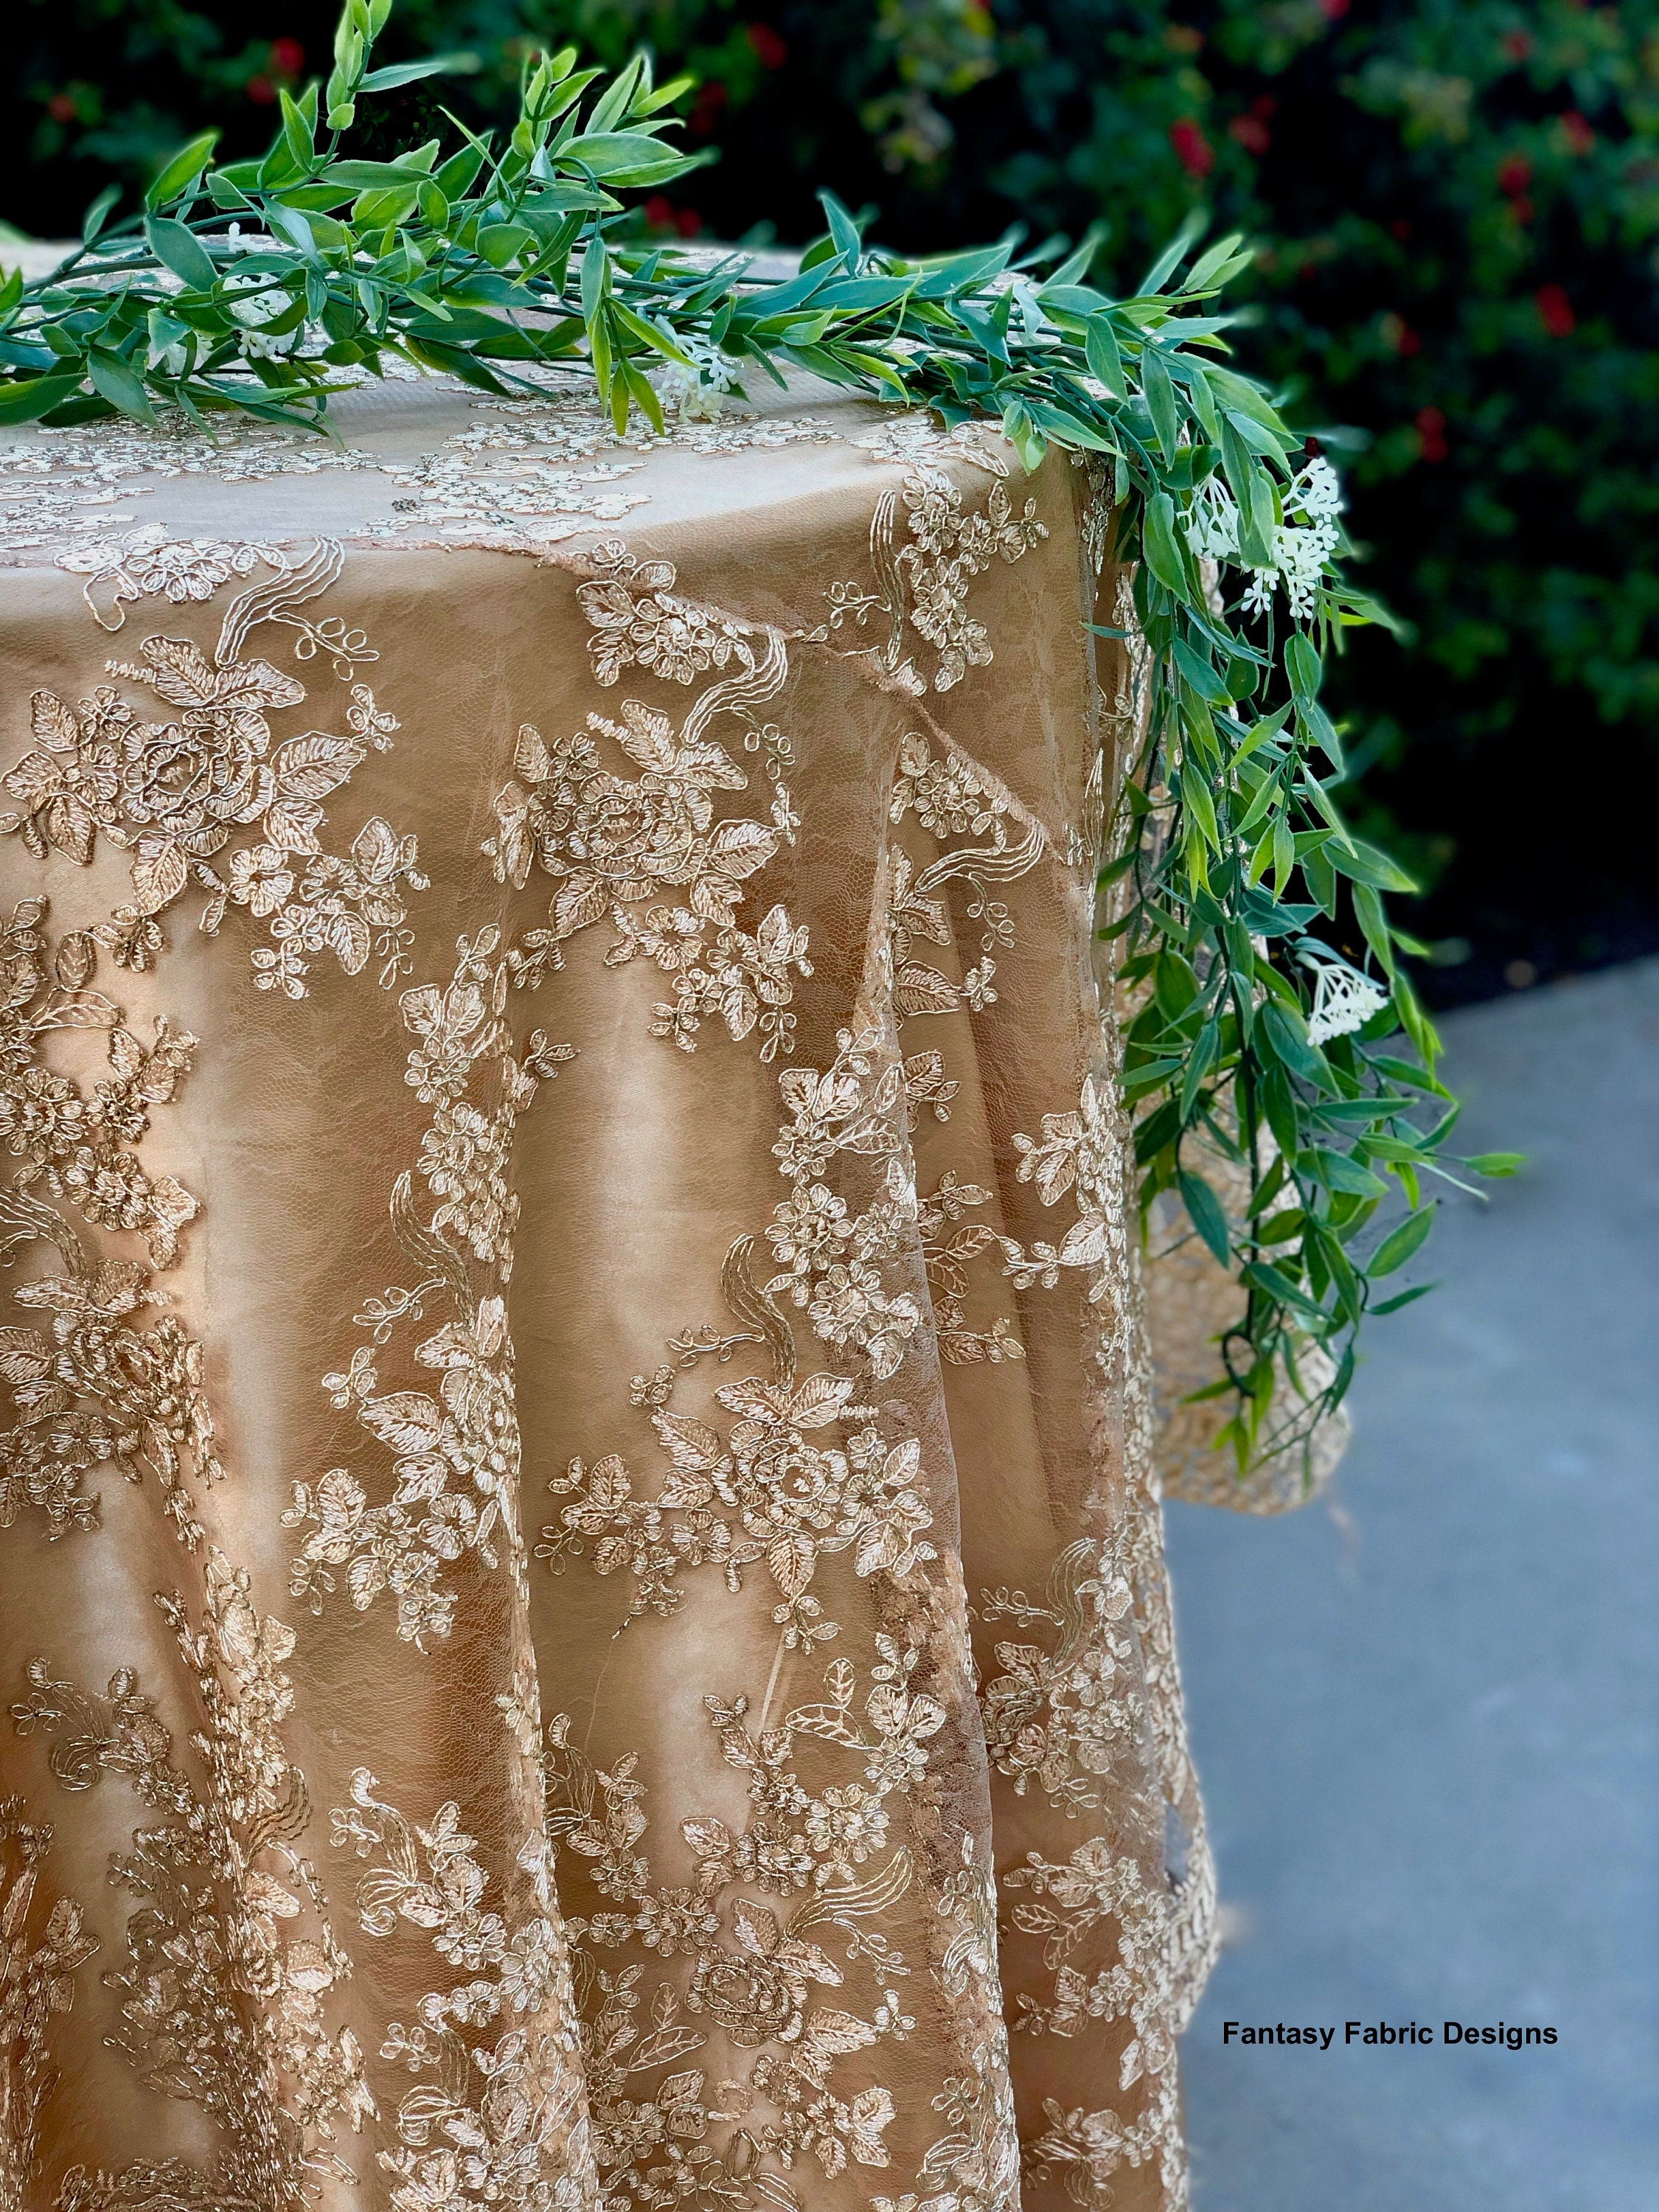 Vintage Wedding Table Cloth Gold Tablecloth Overlay Lace Runner Embroidered Silver Sale